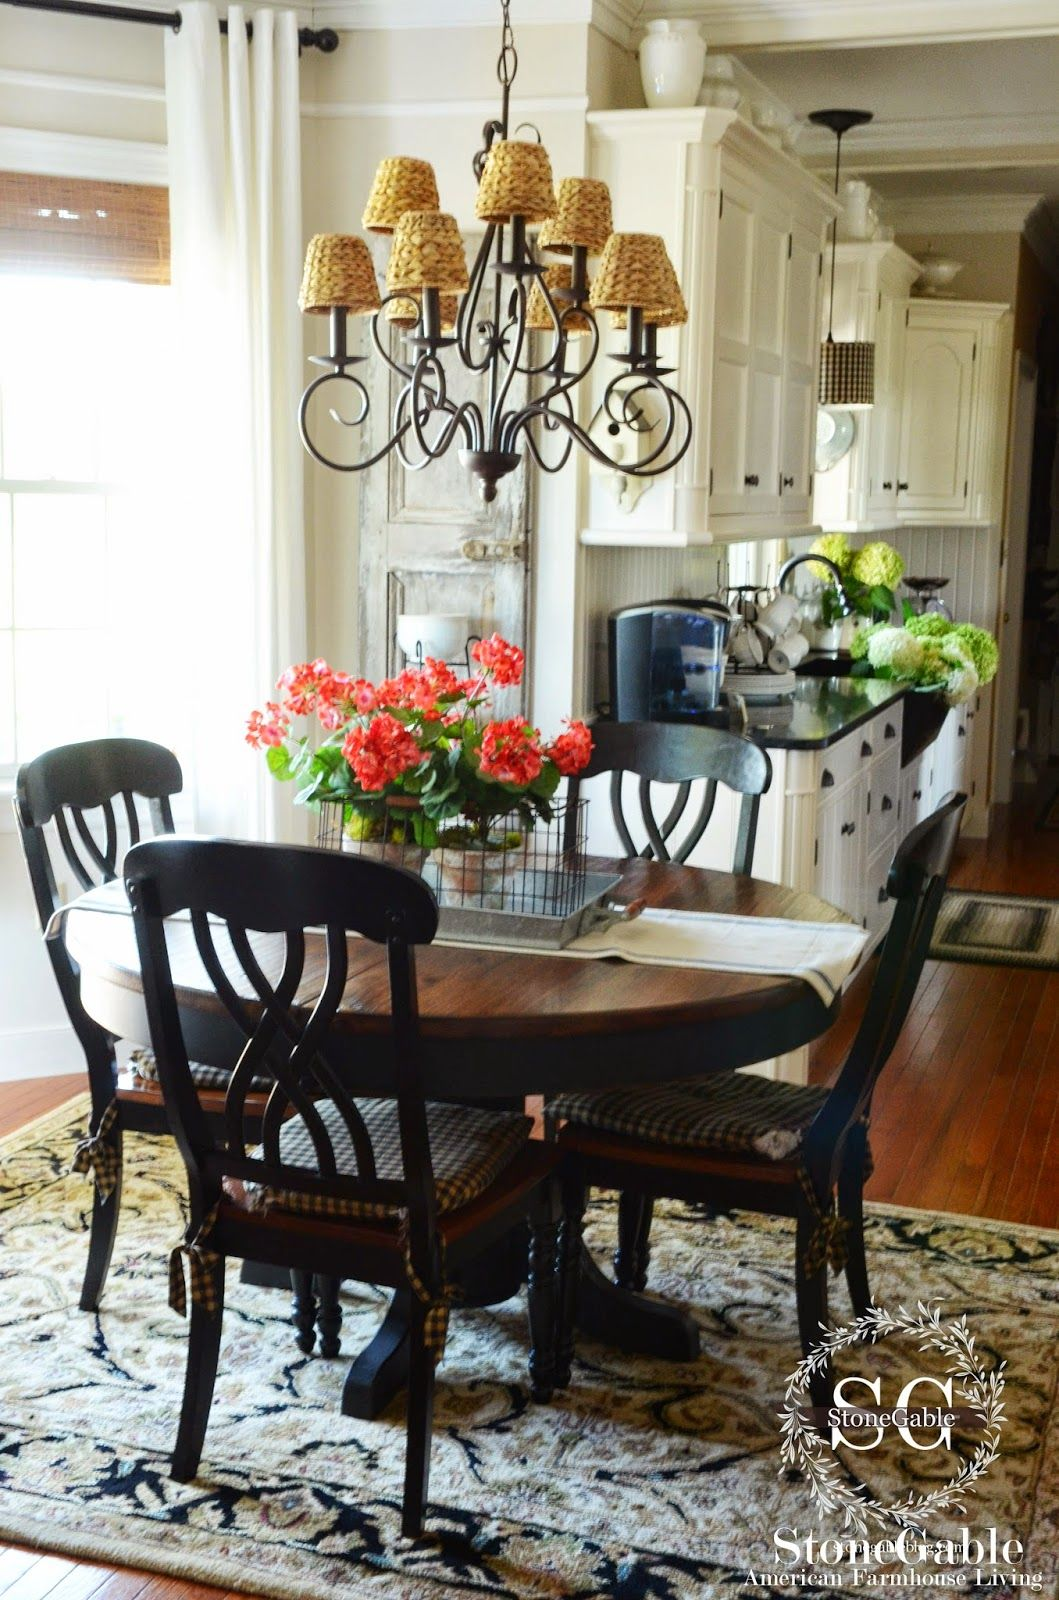 THE SUMMER FARMHOUSE KITCHEN Farmhouse kitchen tables